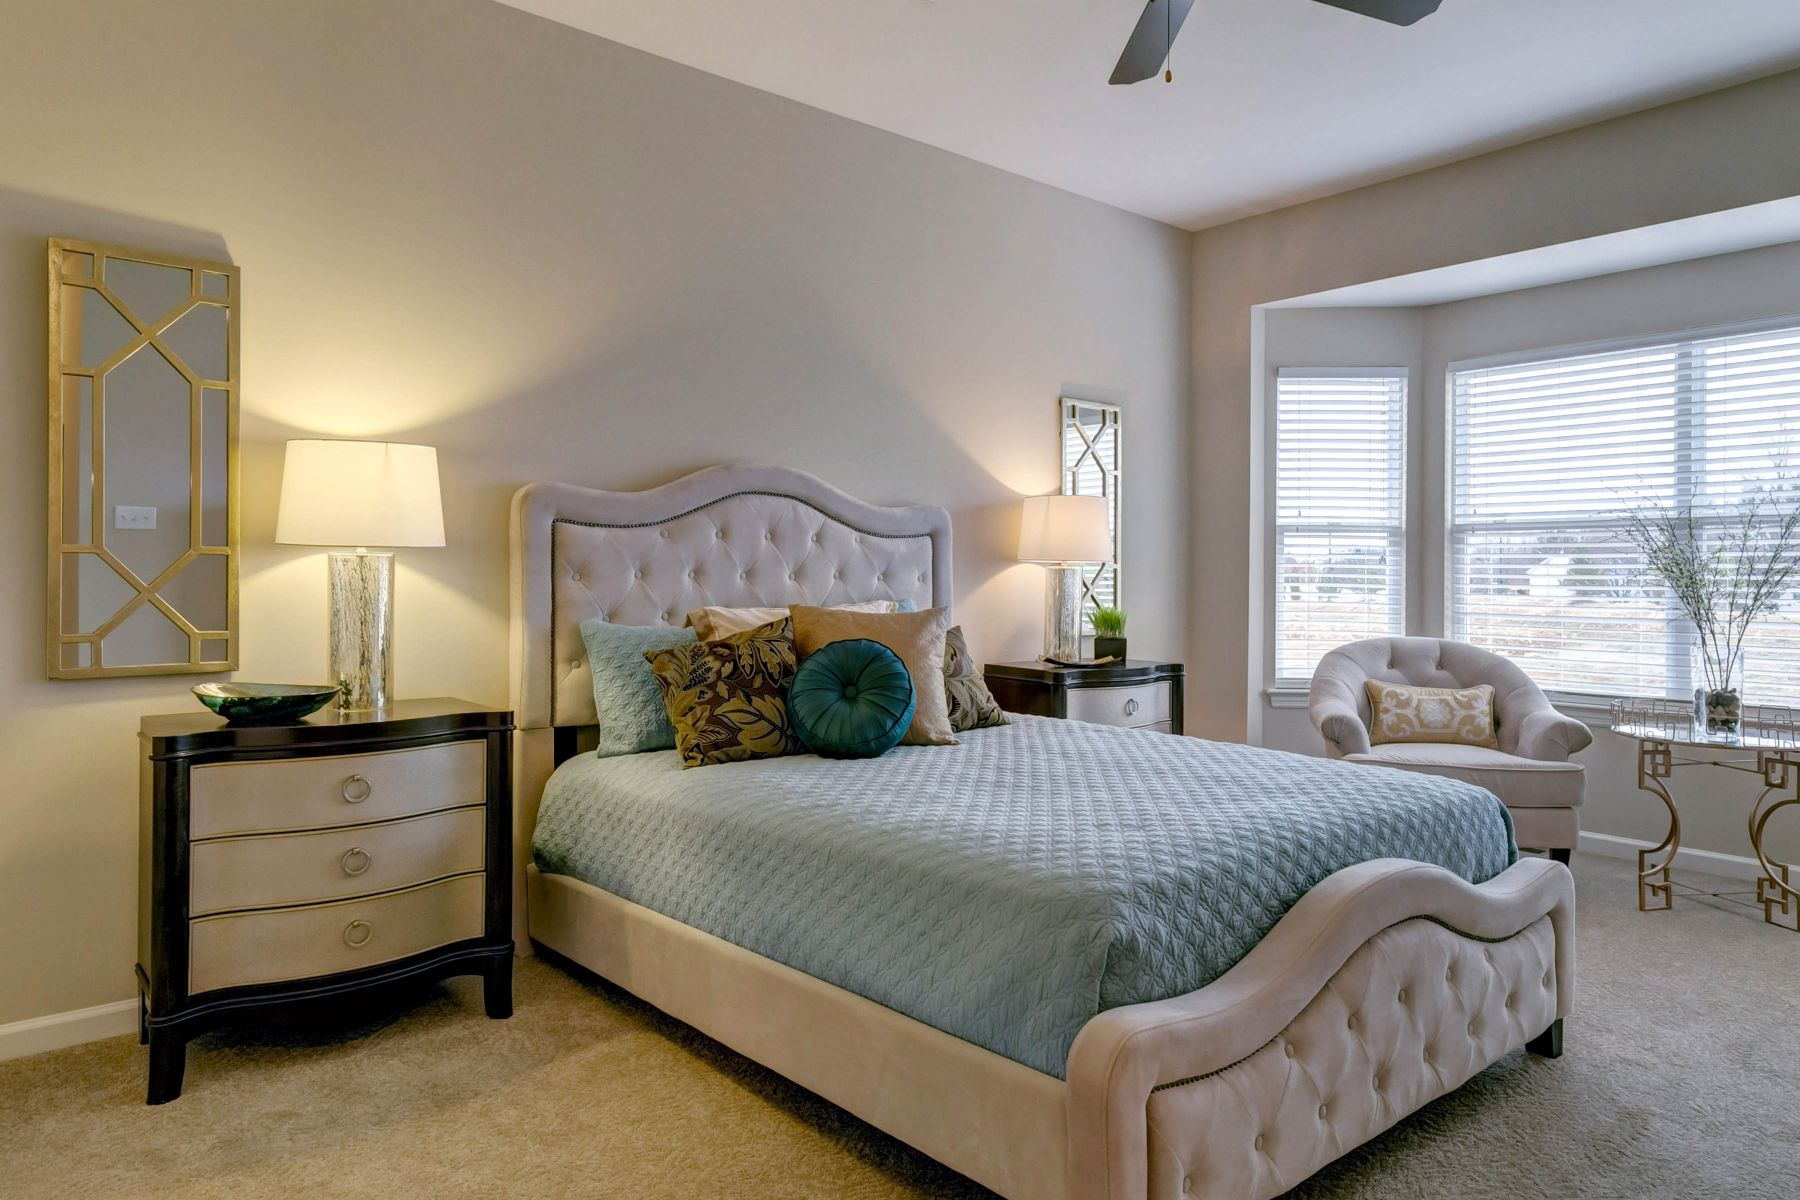 home staging services - hometenders home staging & design